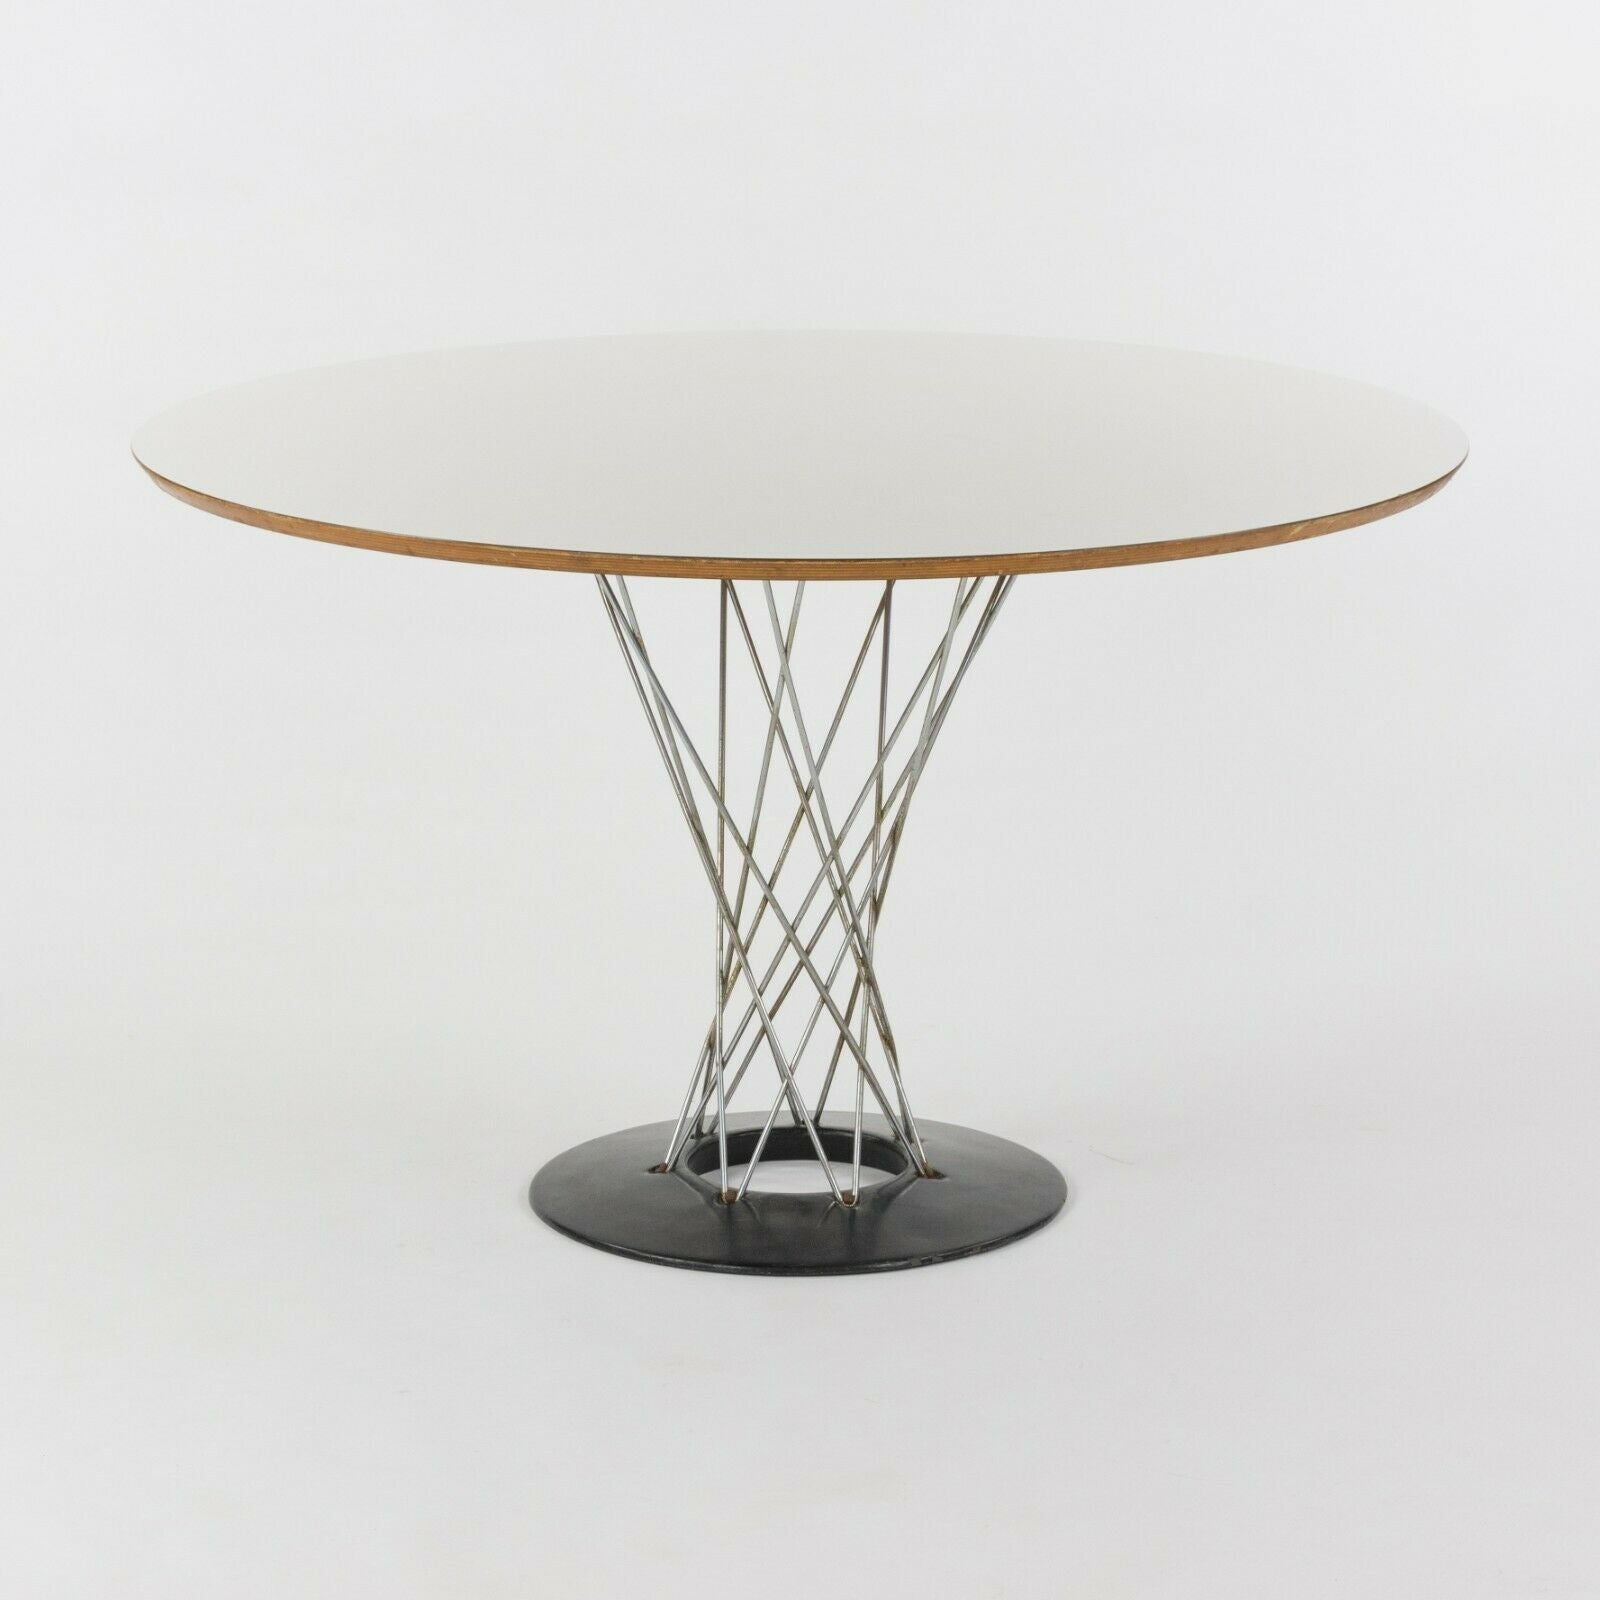 1960s Isamu Noguchi for Knoll Associates Cyclone Dining Table White Laminate 48""